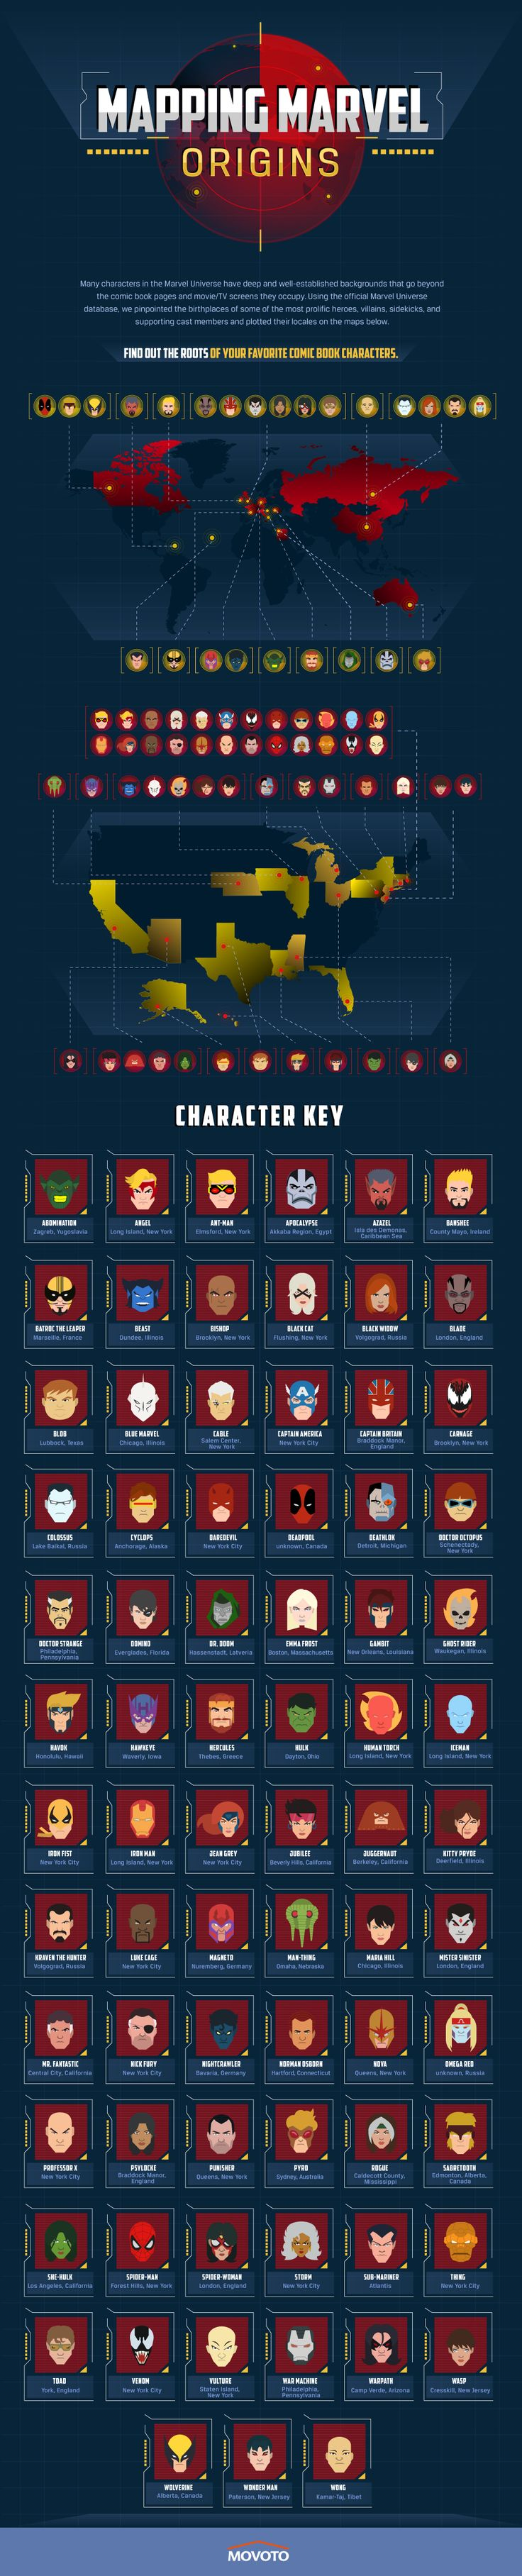 mapping-marvel